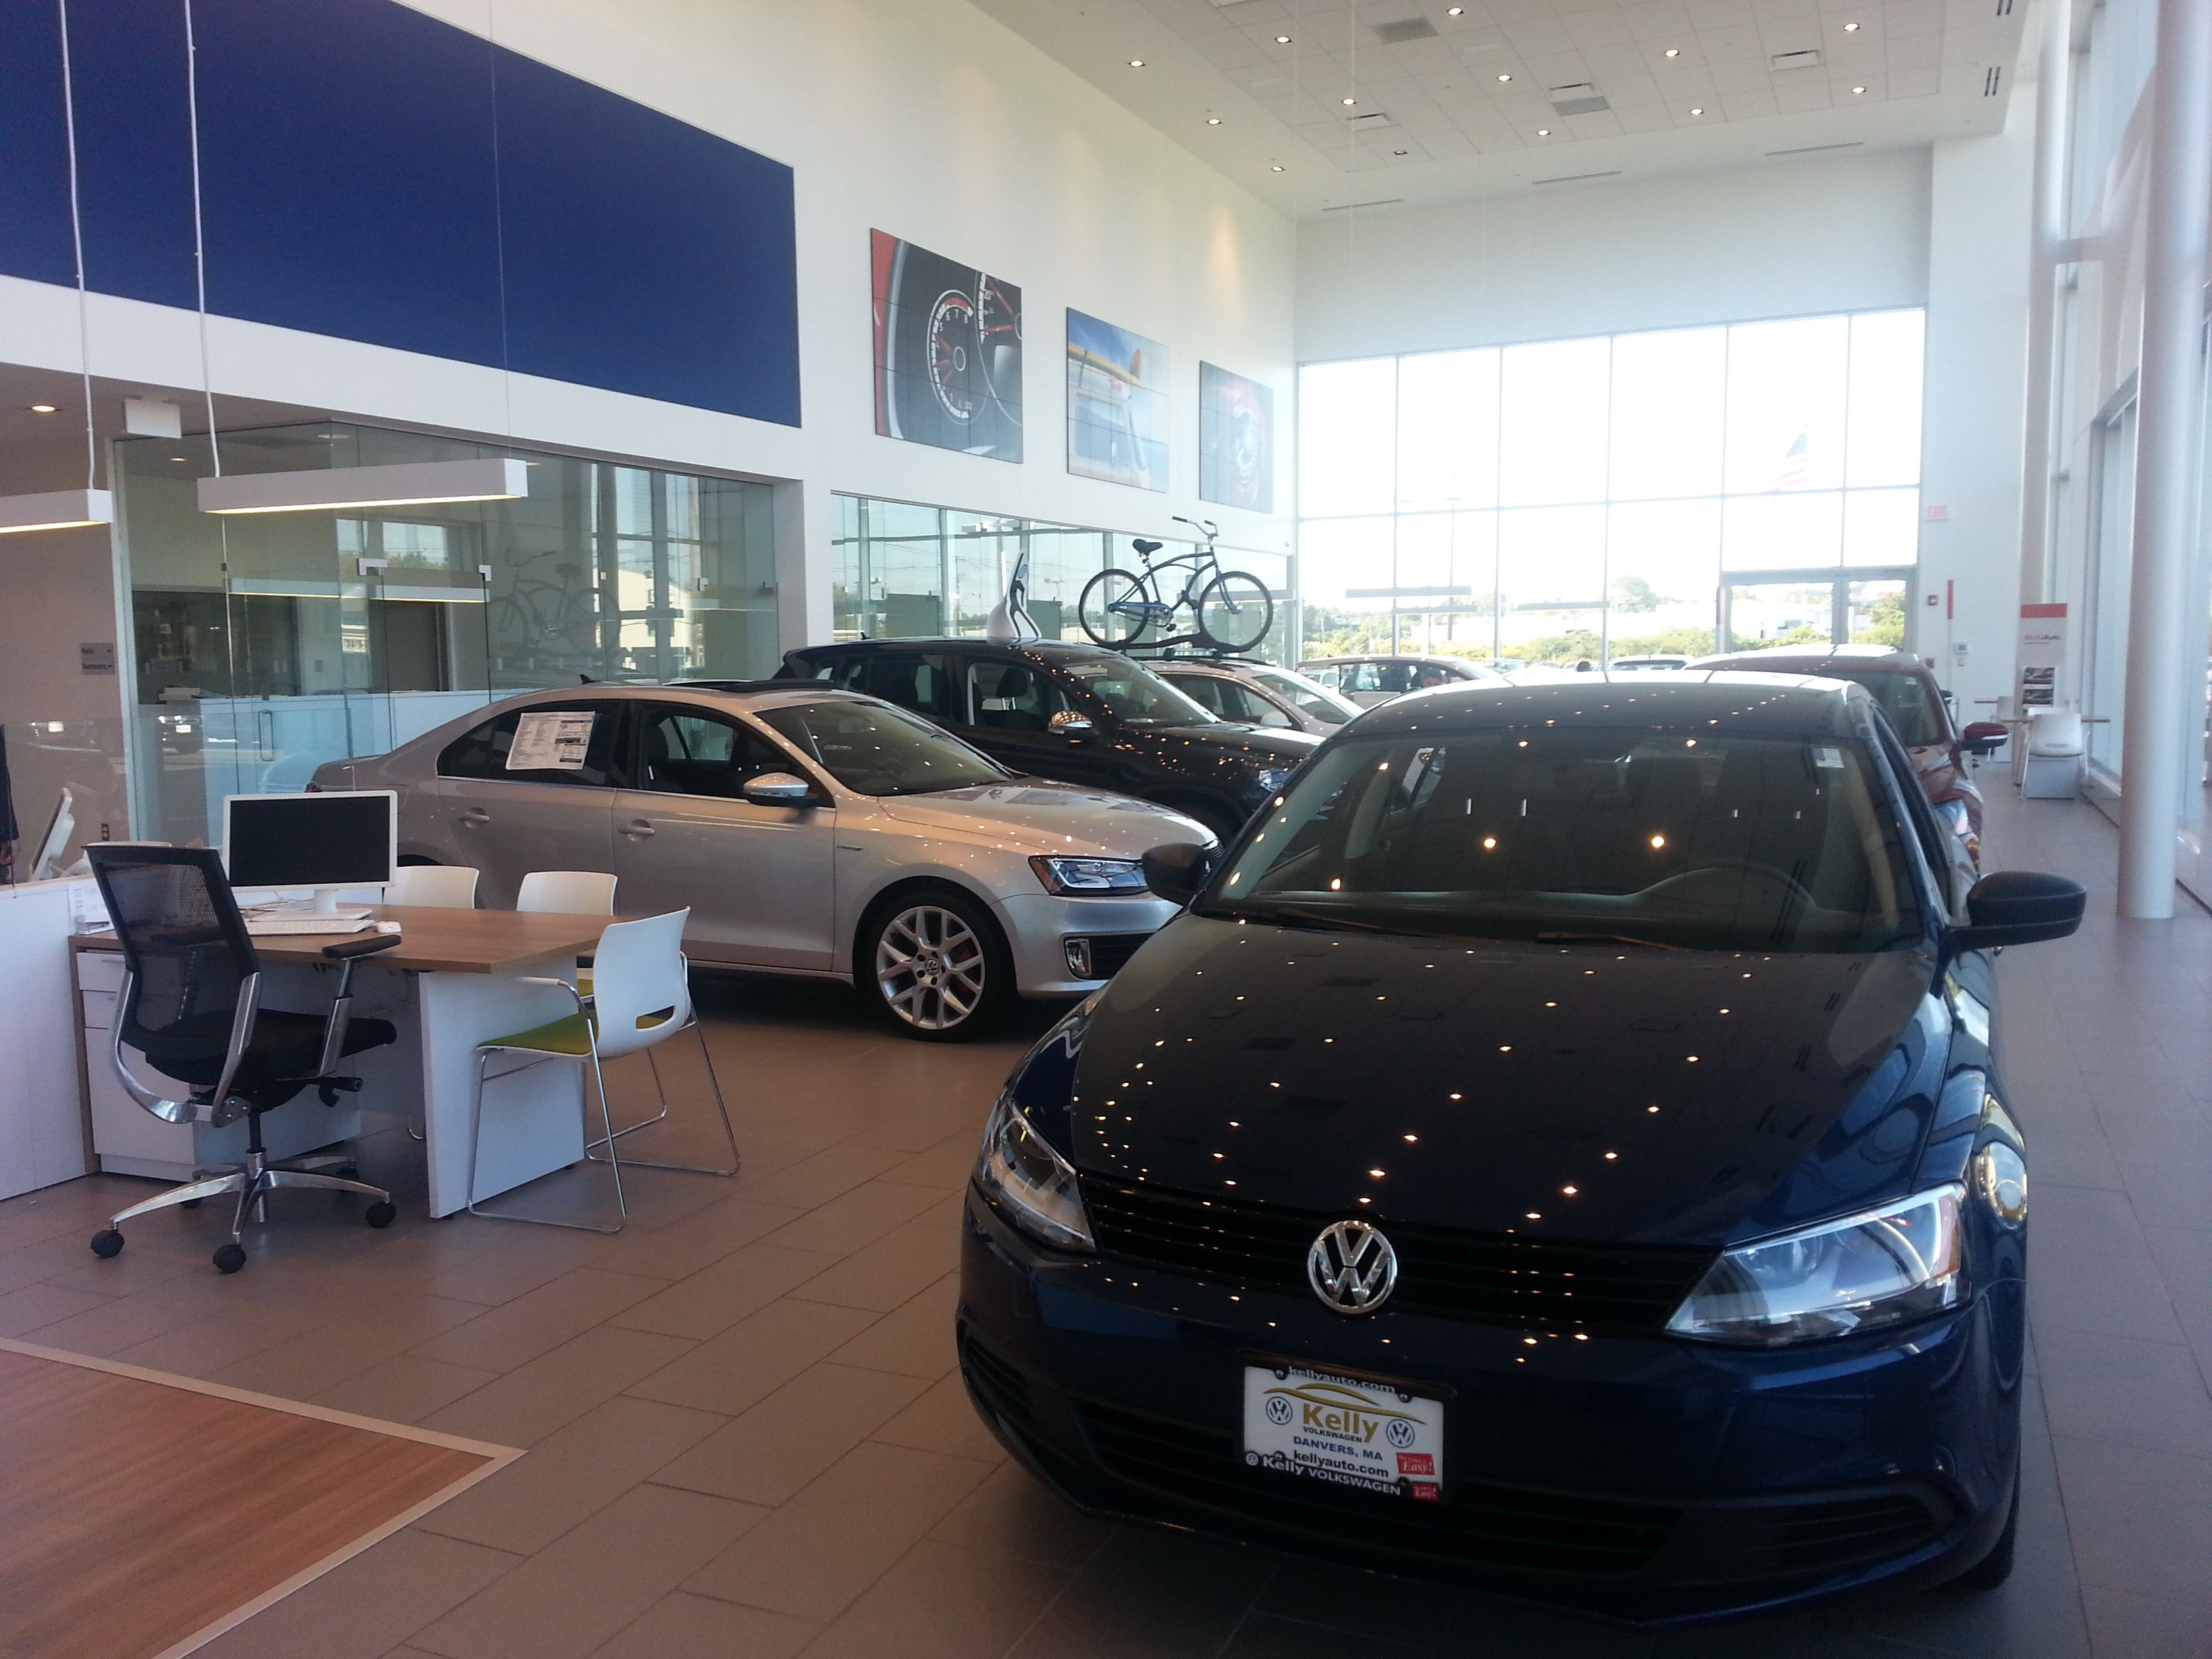 vw   car dealer  danvers kelly volkswagen  volkswagen  danvers vw cars